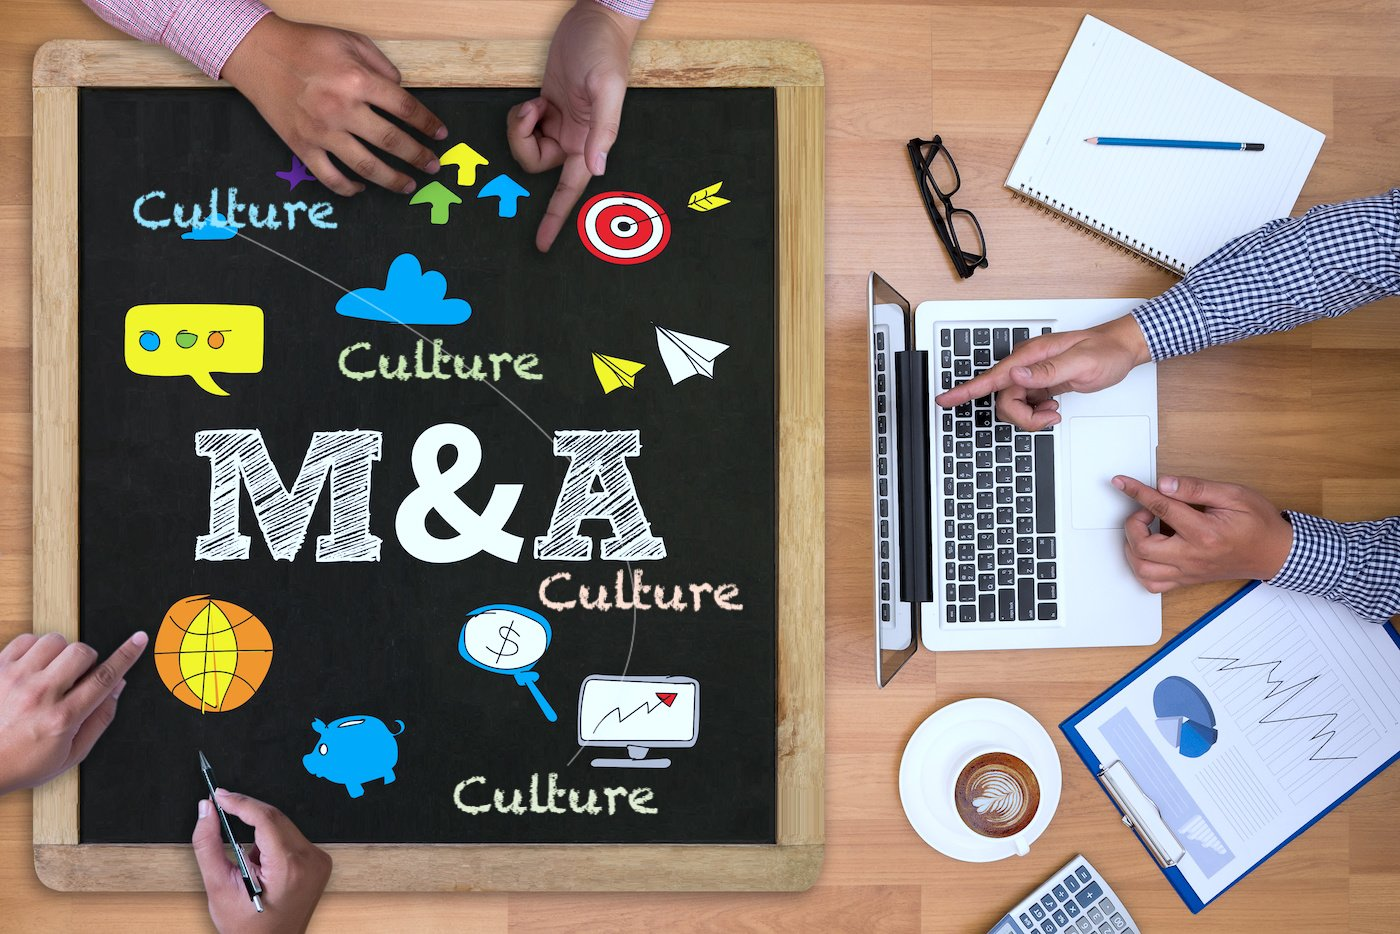 Crafting your new Culture in Mergers and Acquisitions (M&A)